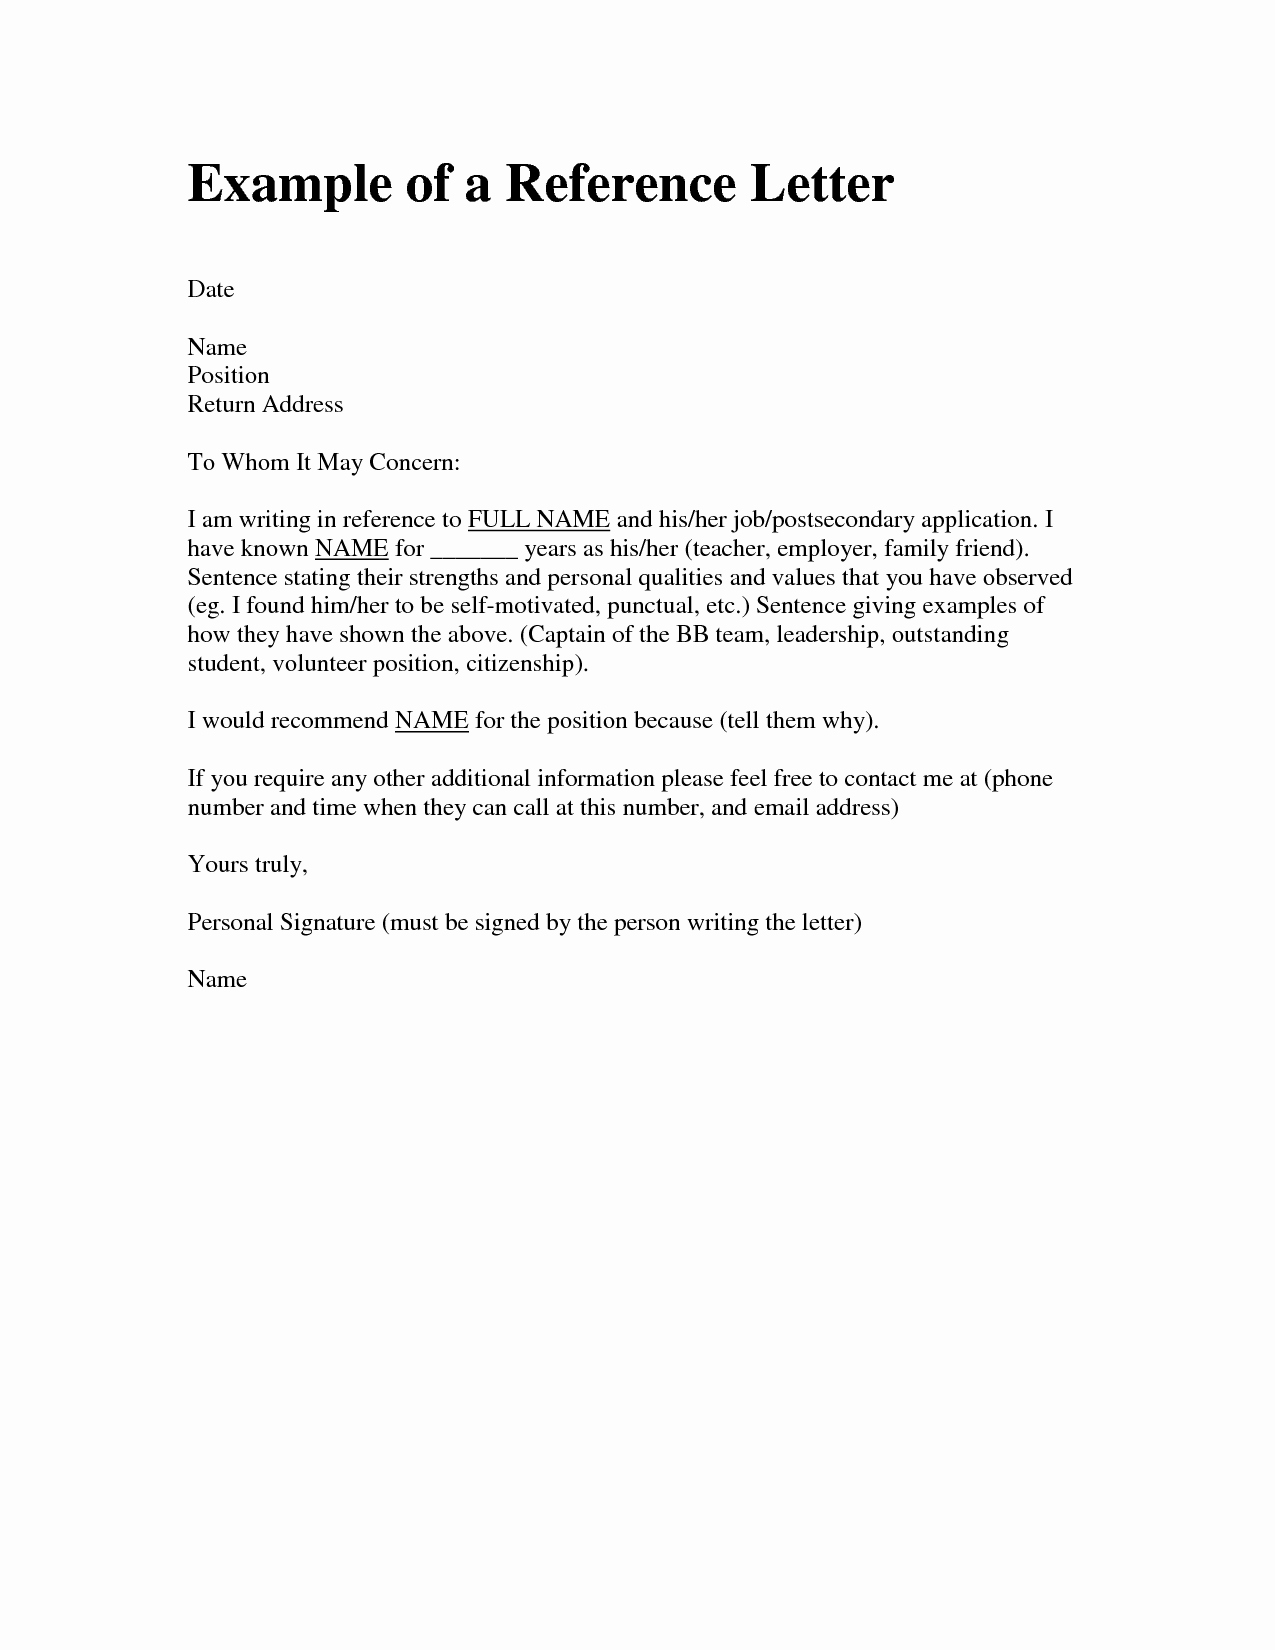 Letters Of Recommendation Template Elegant Letter Re Mendation Template for Friend Letter Art